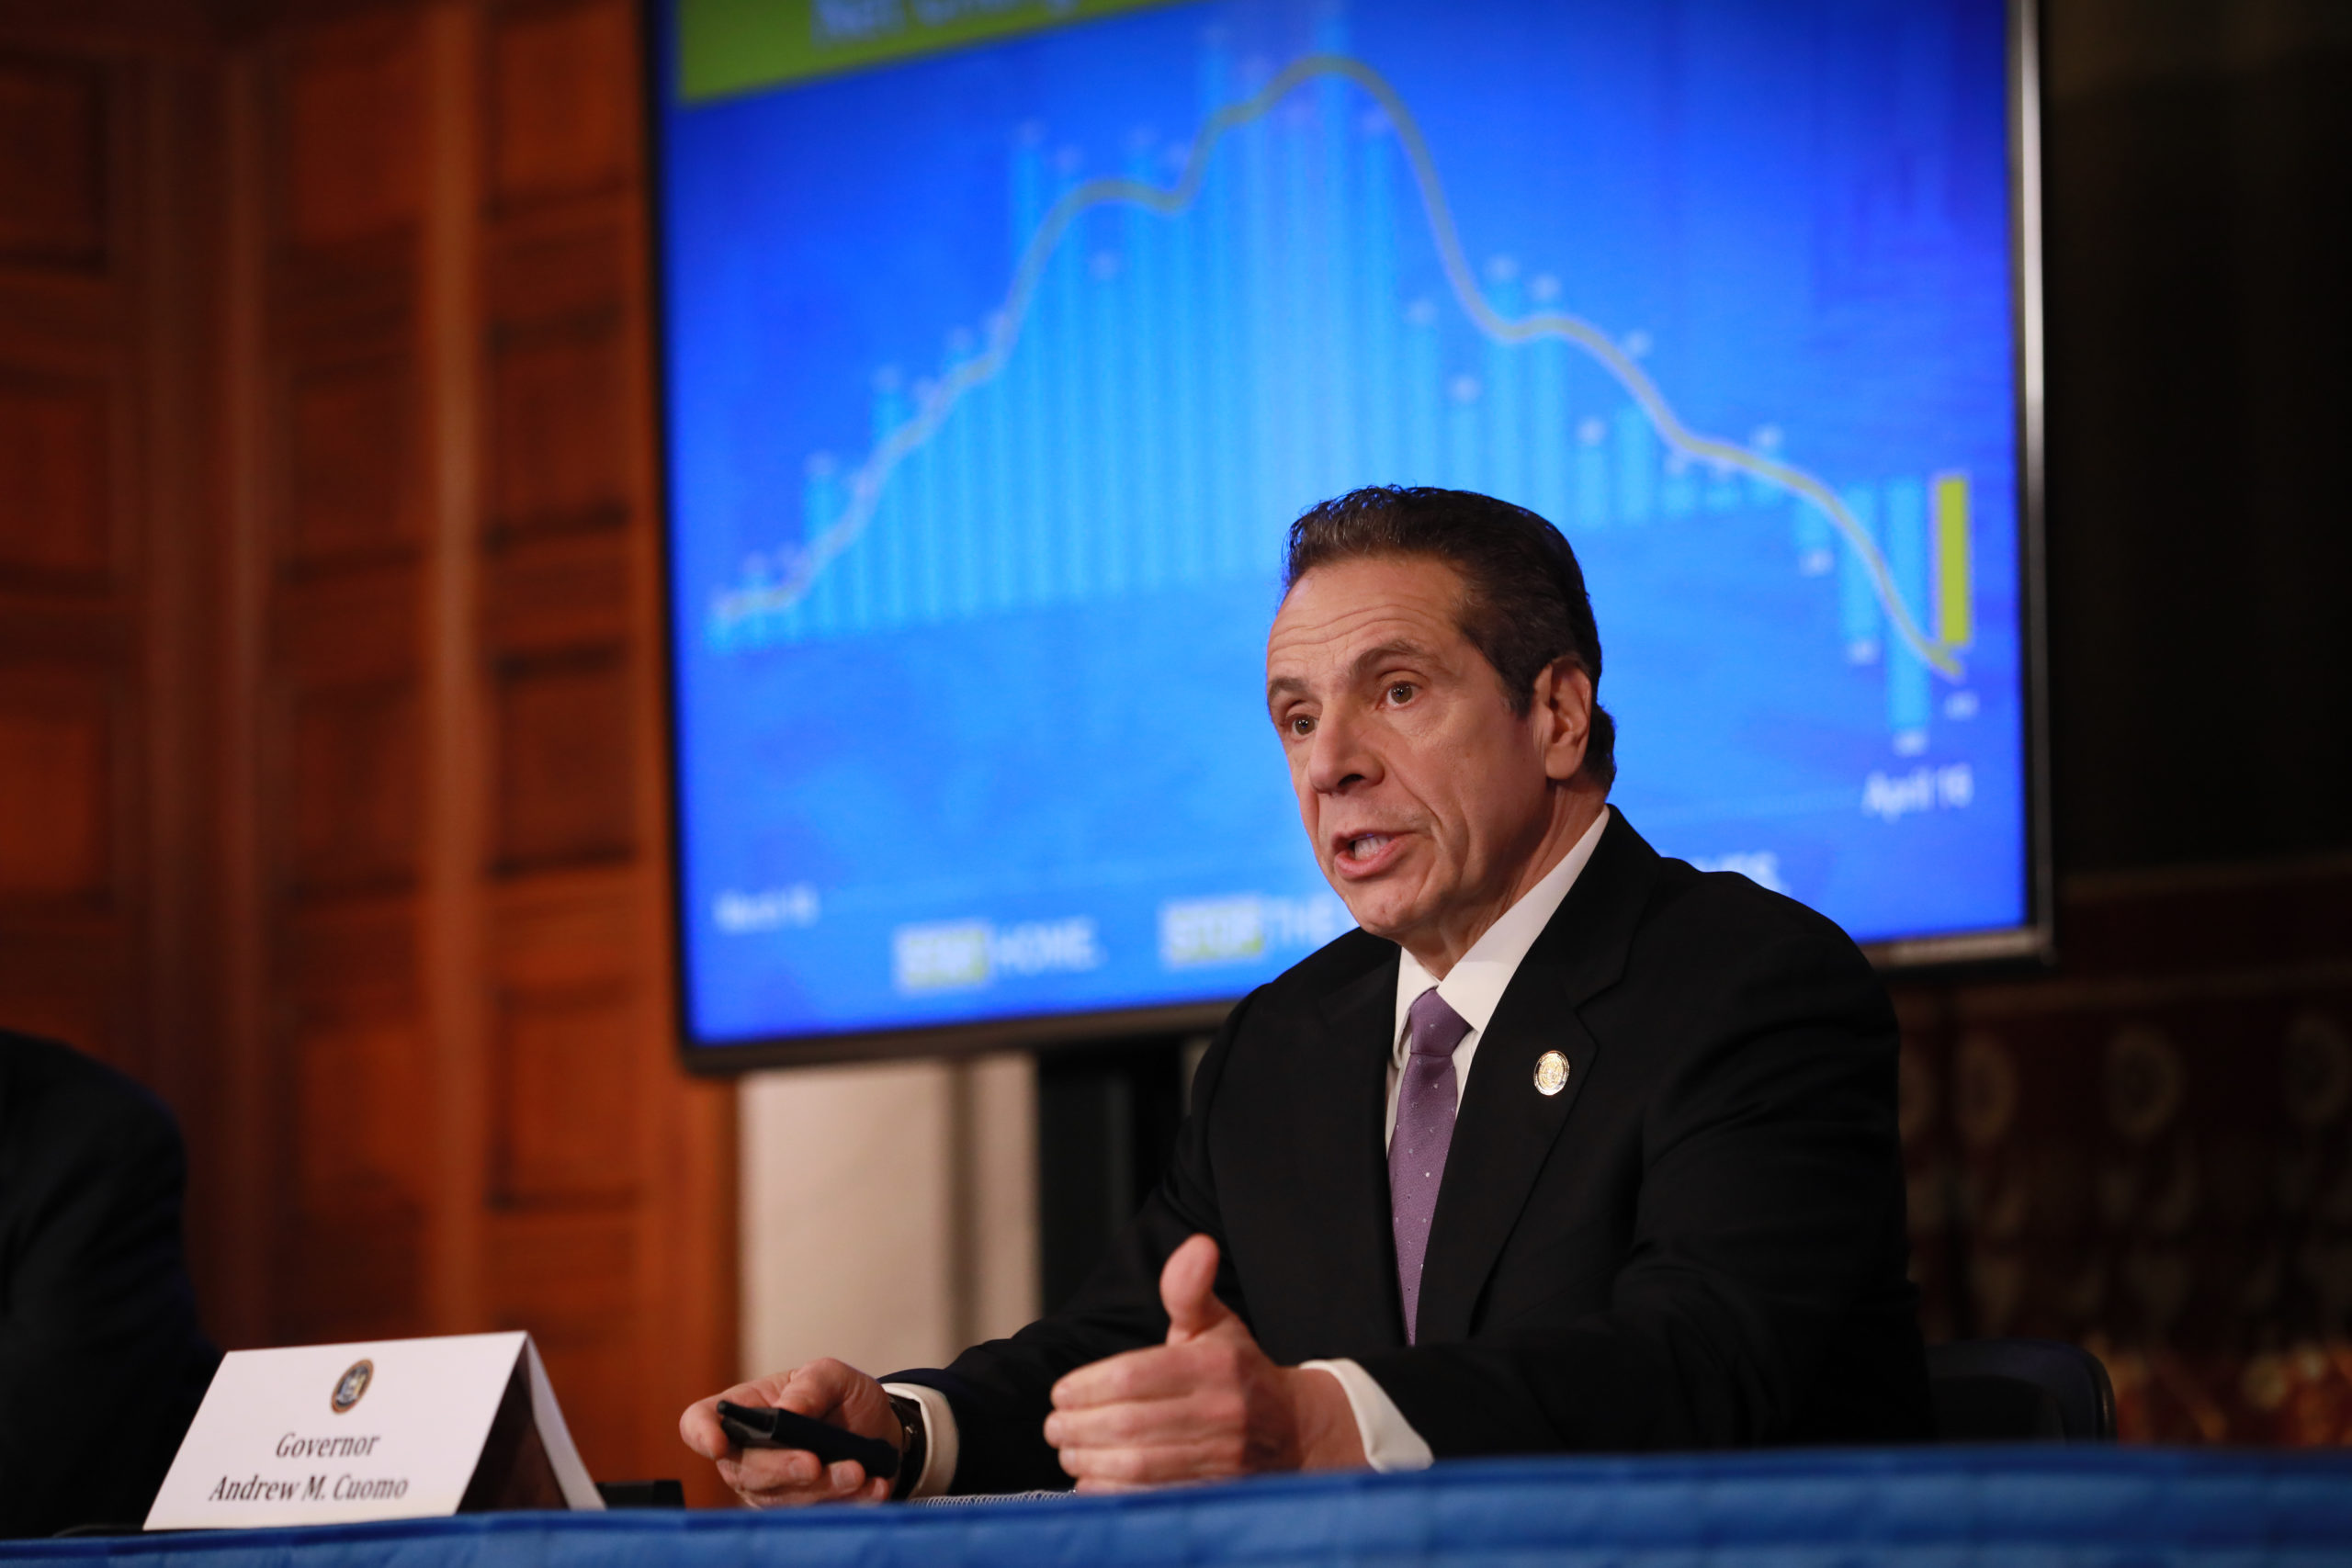 New York Governor Andrew Cuomo gives his a press briefing about the coronavirus crisis on April 17, 2020 in Albany, New York.(Photo by Matthew Cavanaugh/Getty Images)